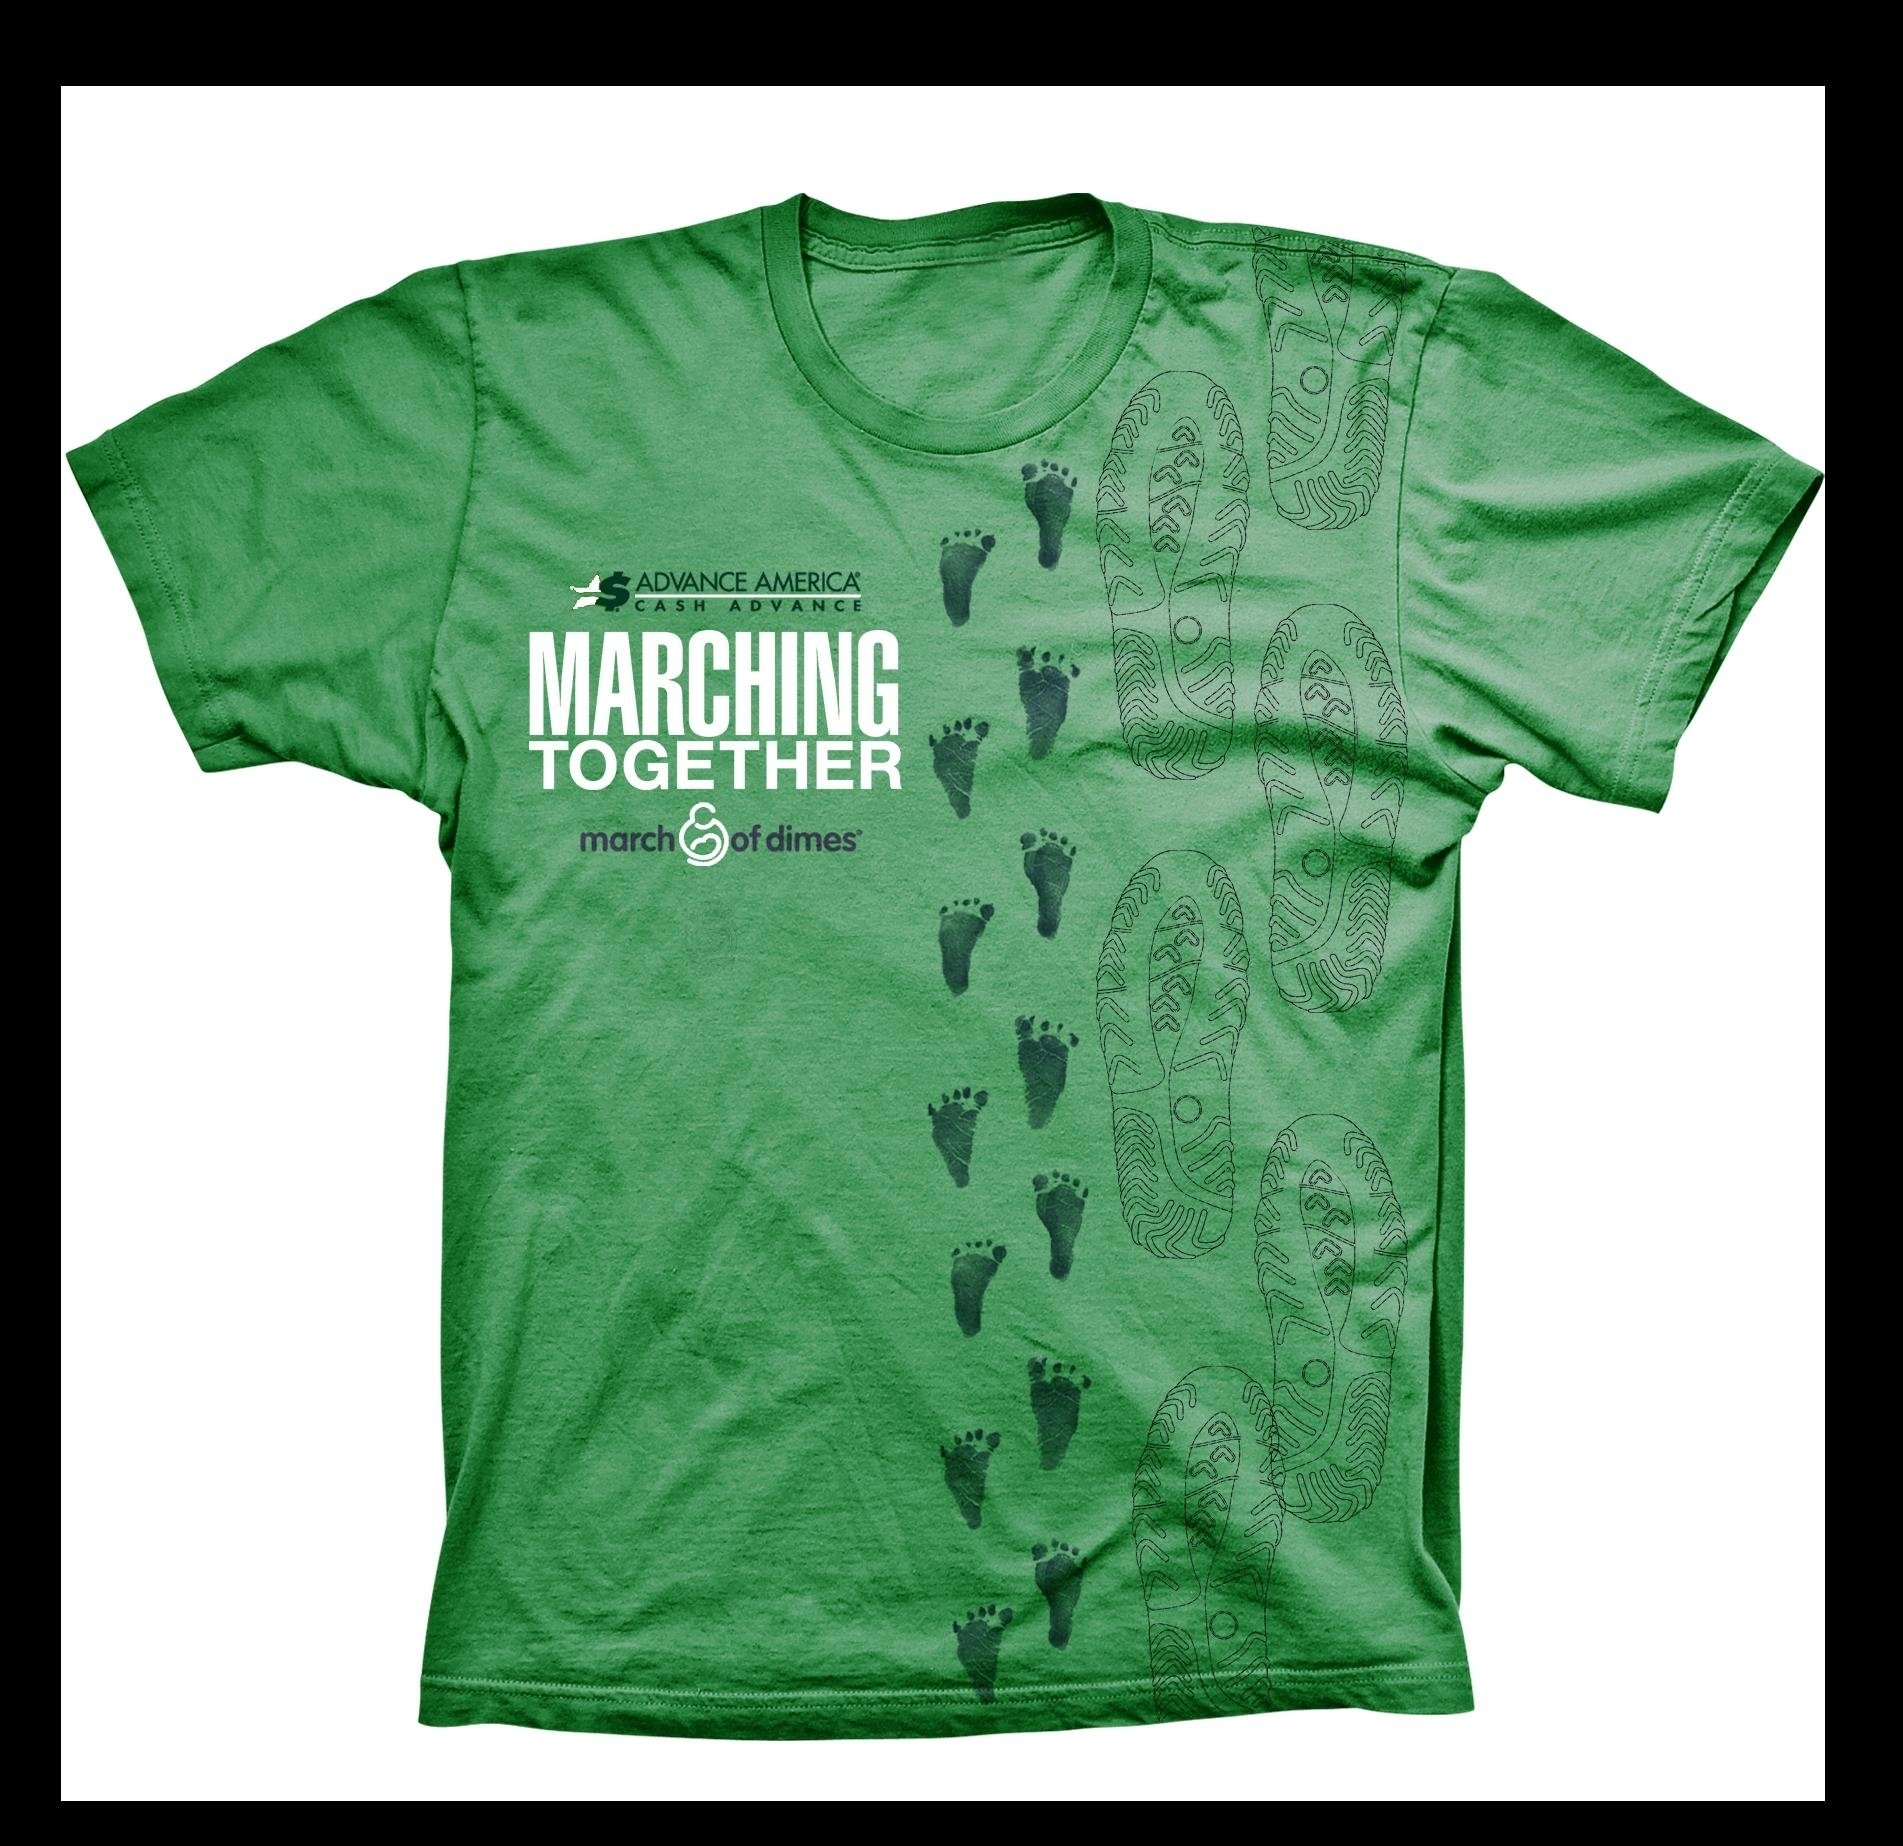 10 Amazing March Of Dimes T Shirt Ideas march of dimes t shirts t shirts design concept 2021